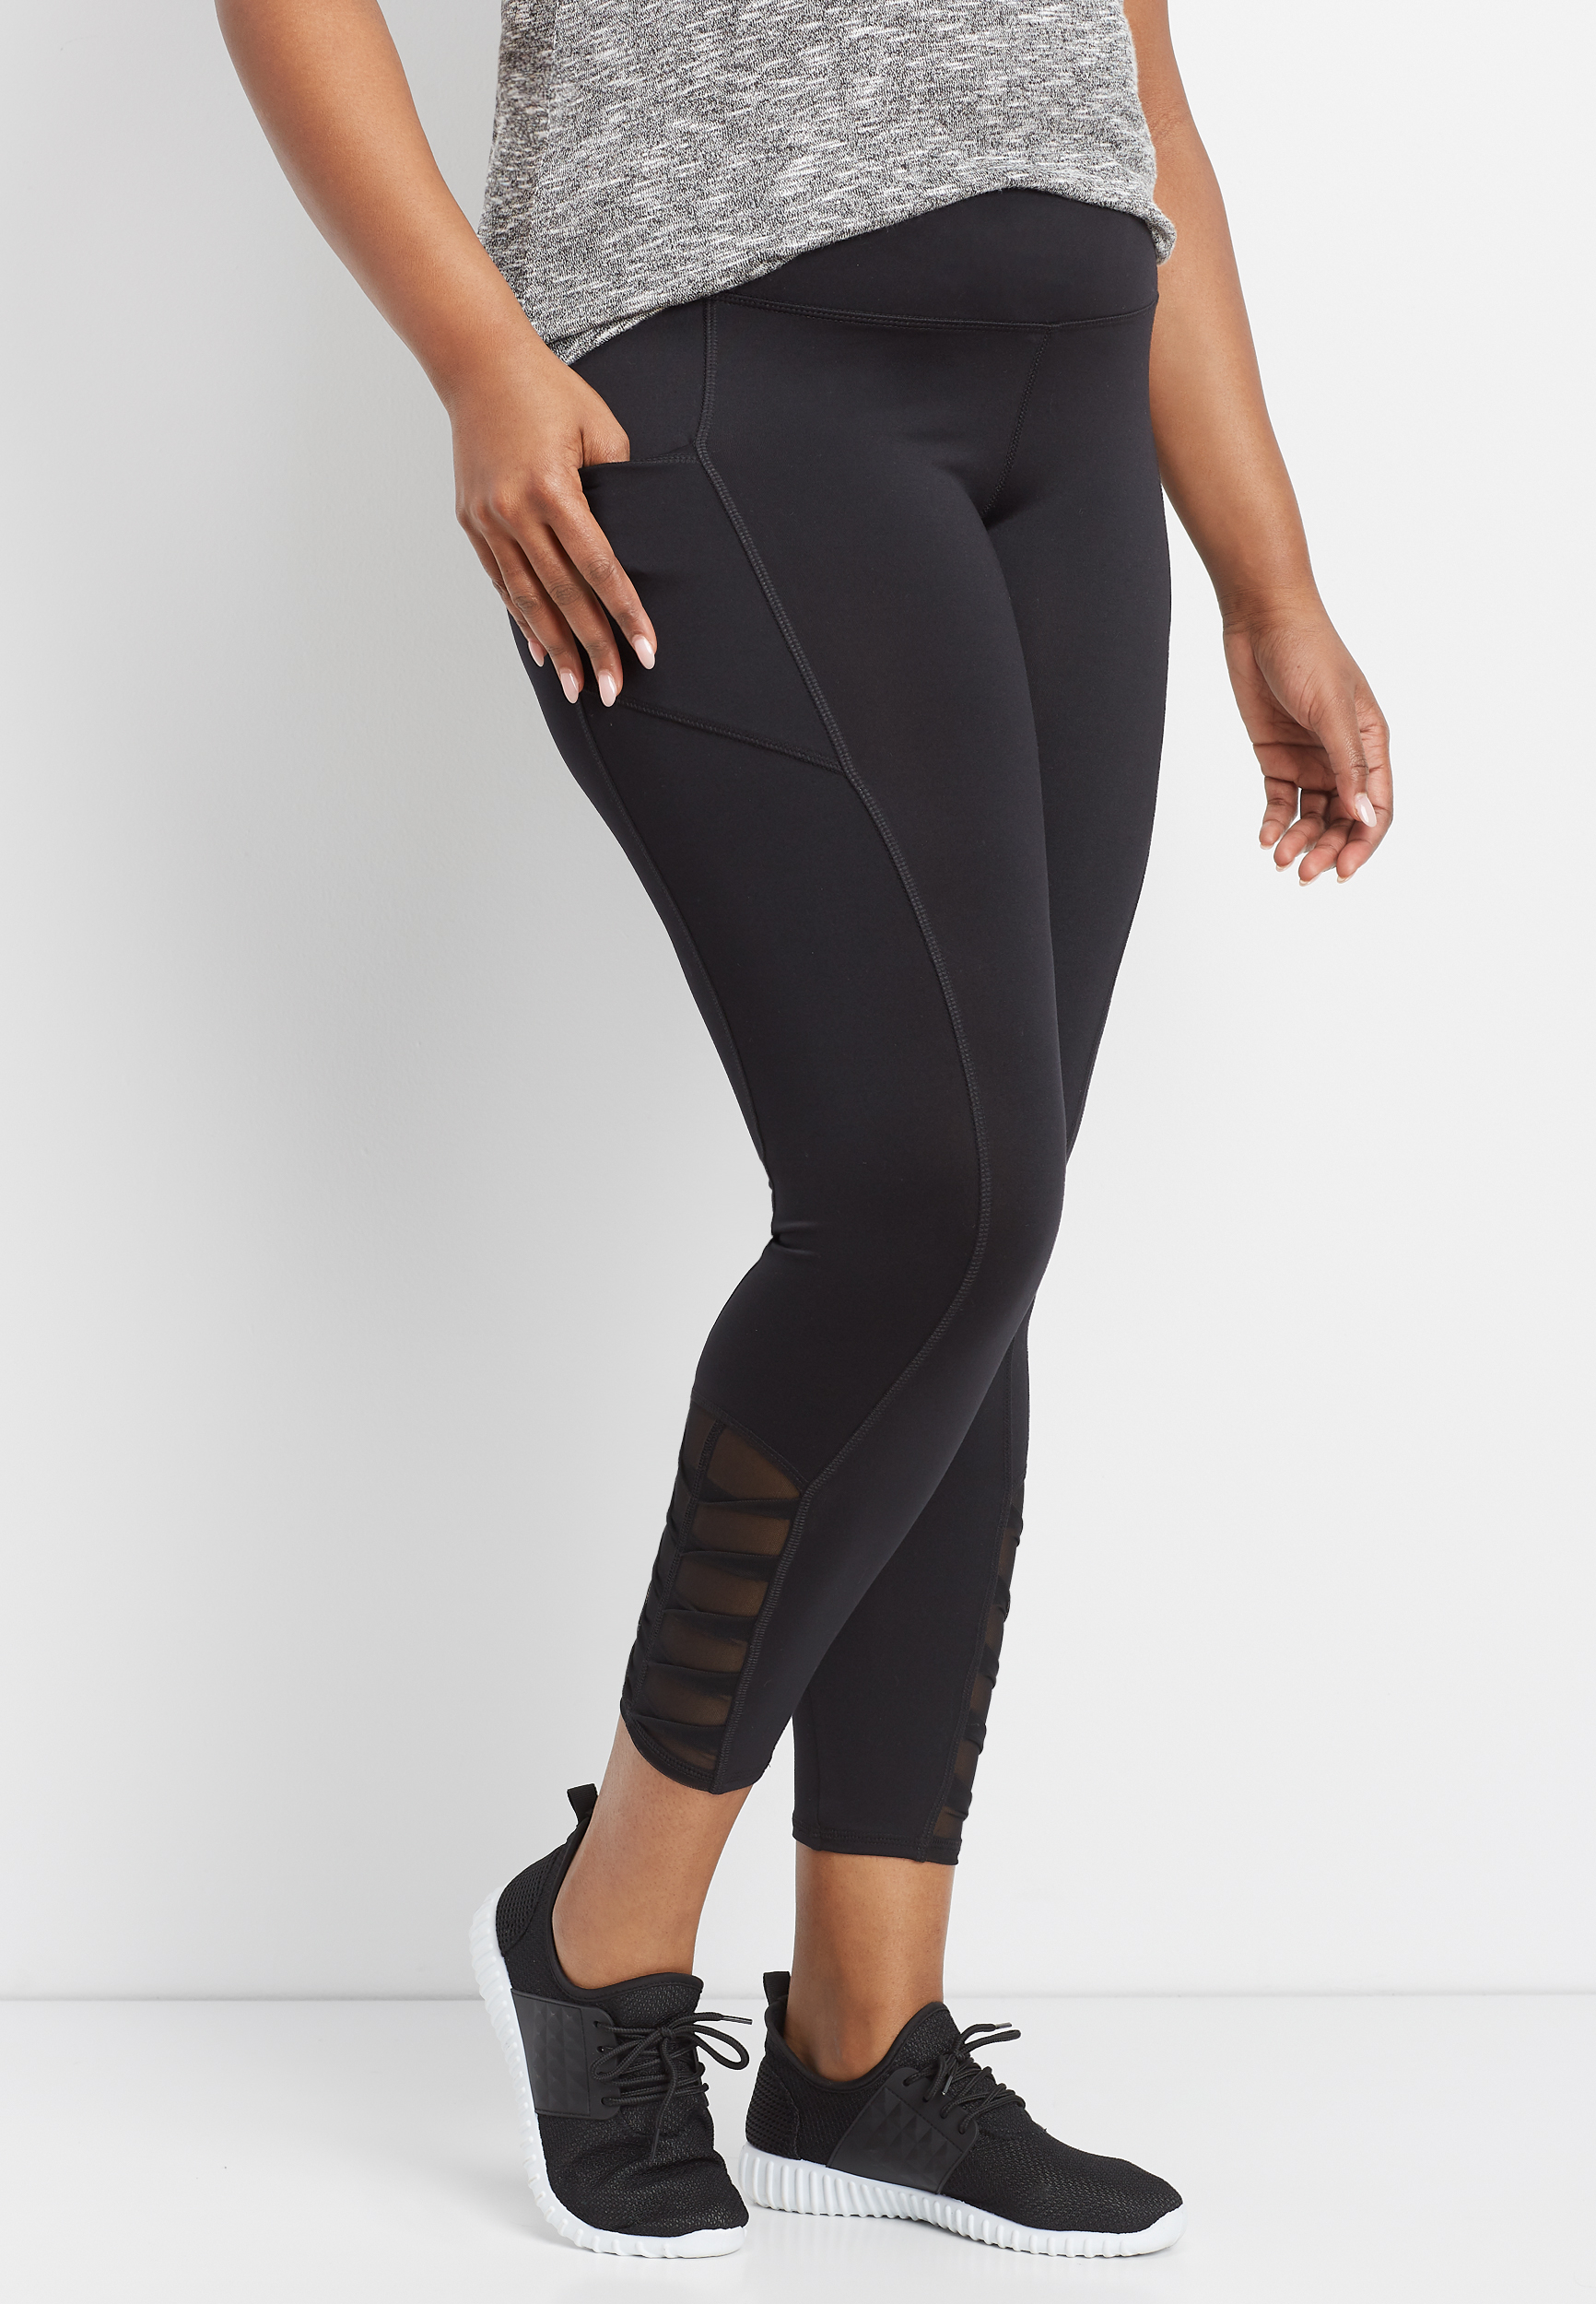 Plus Size Twisted Mesh 7/8 Active Legging by Maurices